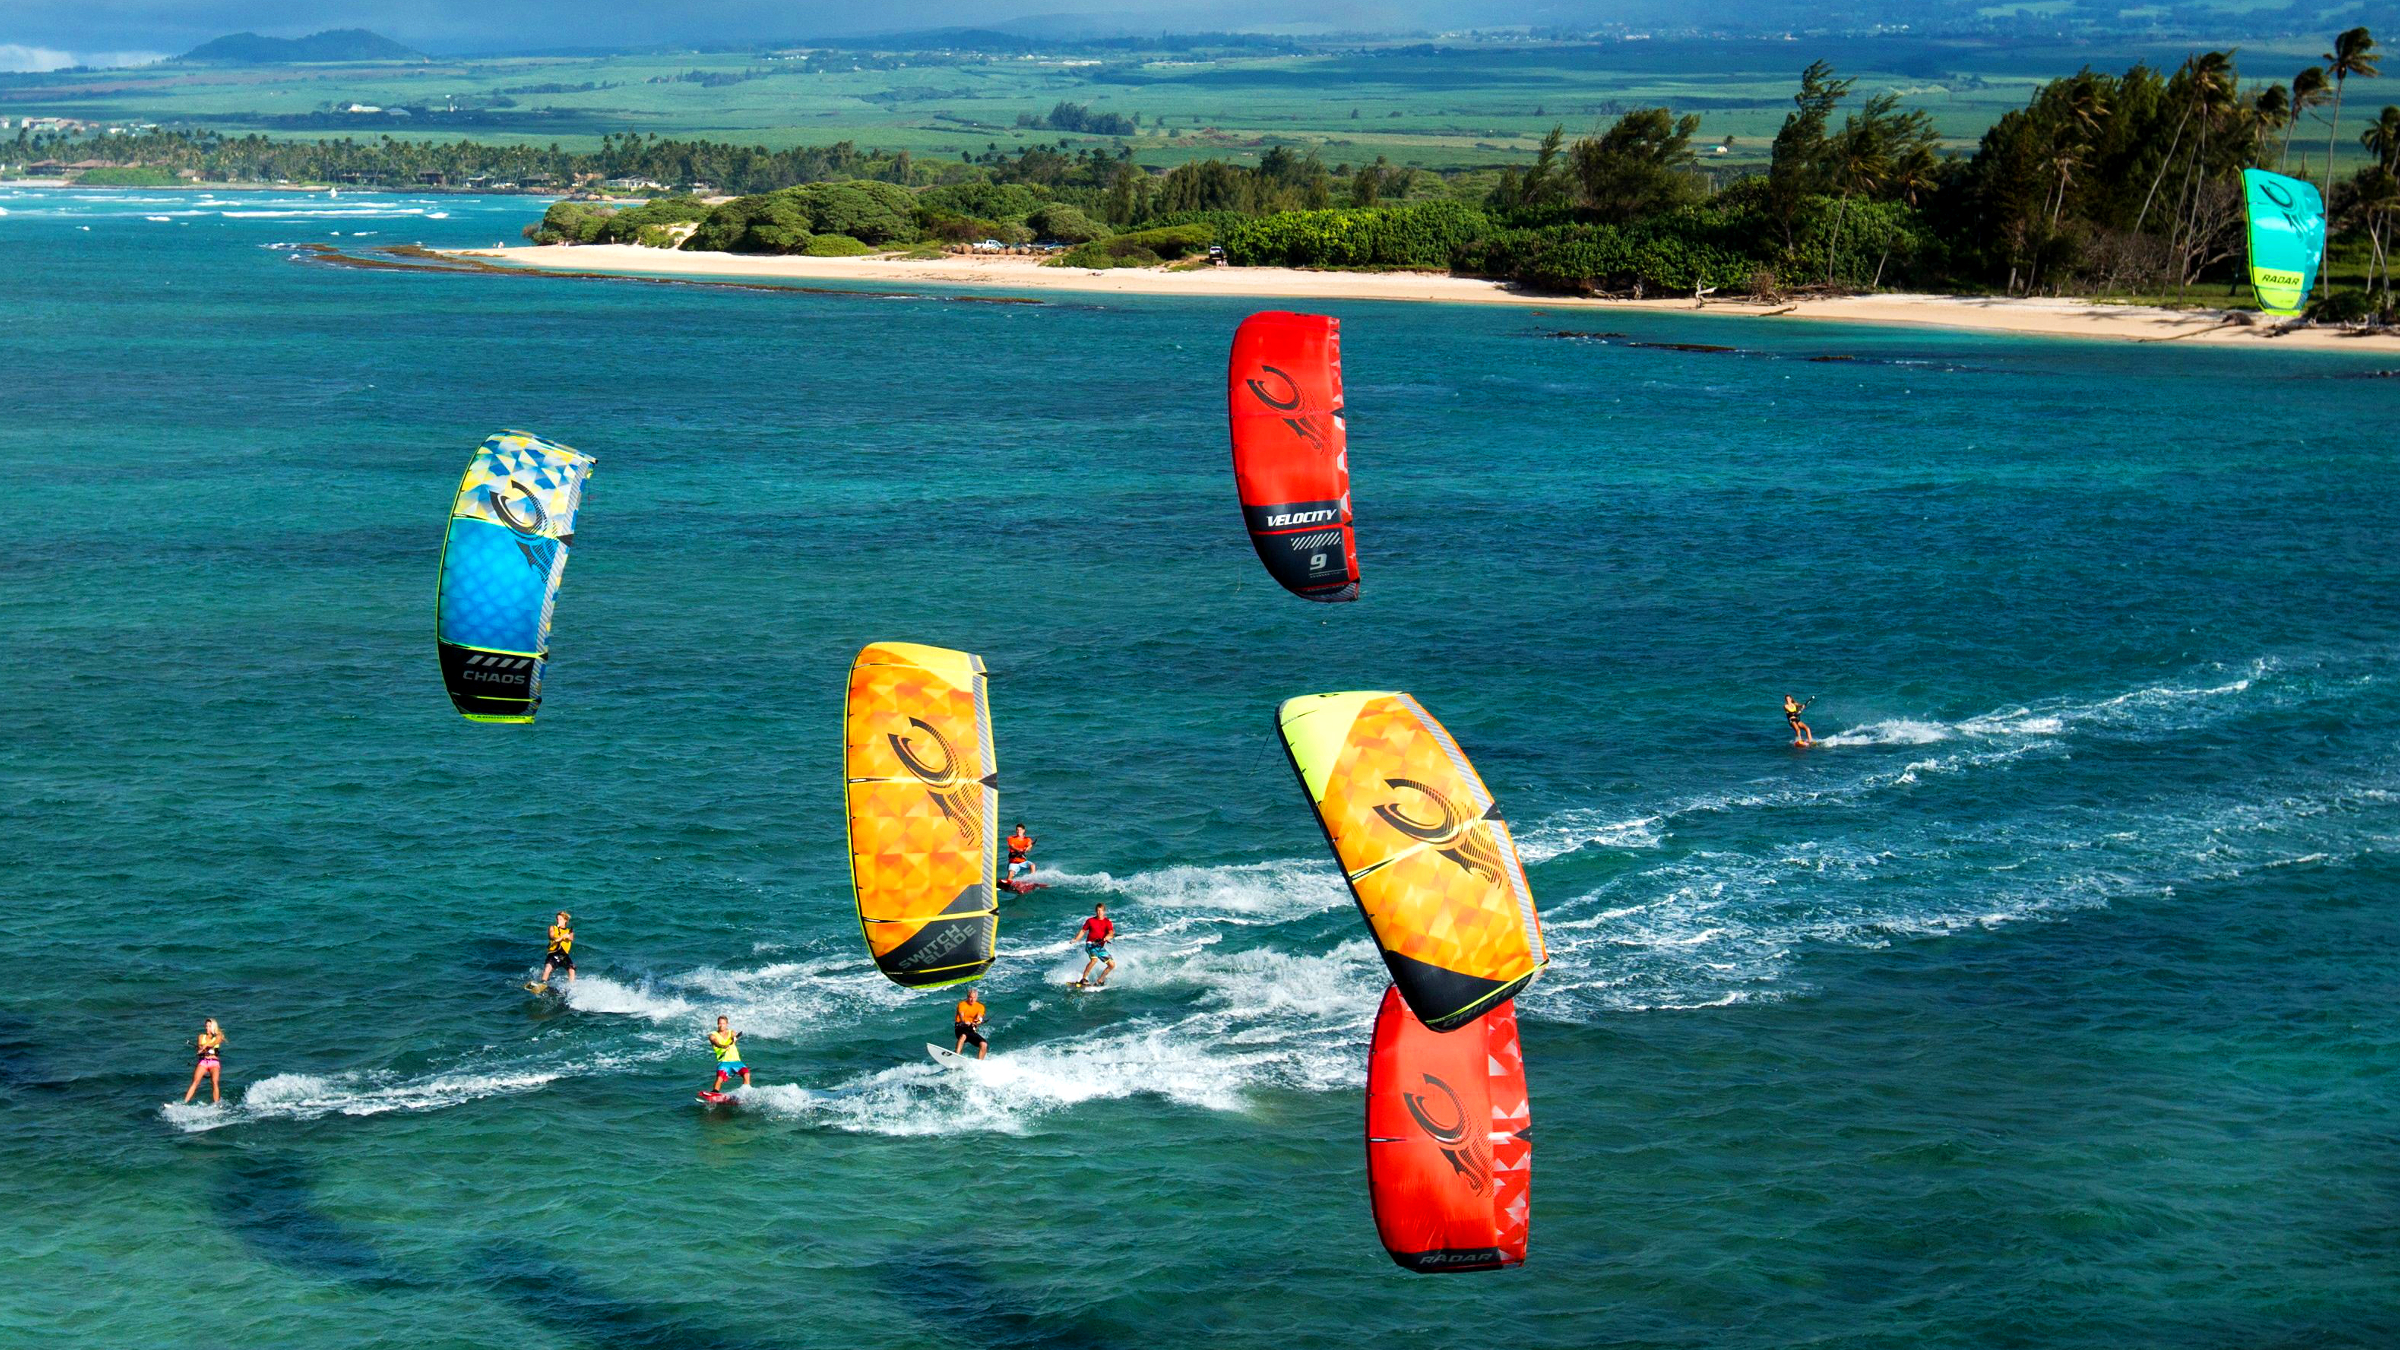 kitesurf wallpaper image - The 2015 Cabrinha Kites teamriders kitesurfing off the coast of Hawaii. - in resolution: High Definition - HD 16:9 2400 X 1350